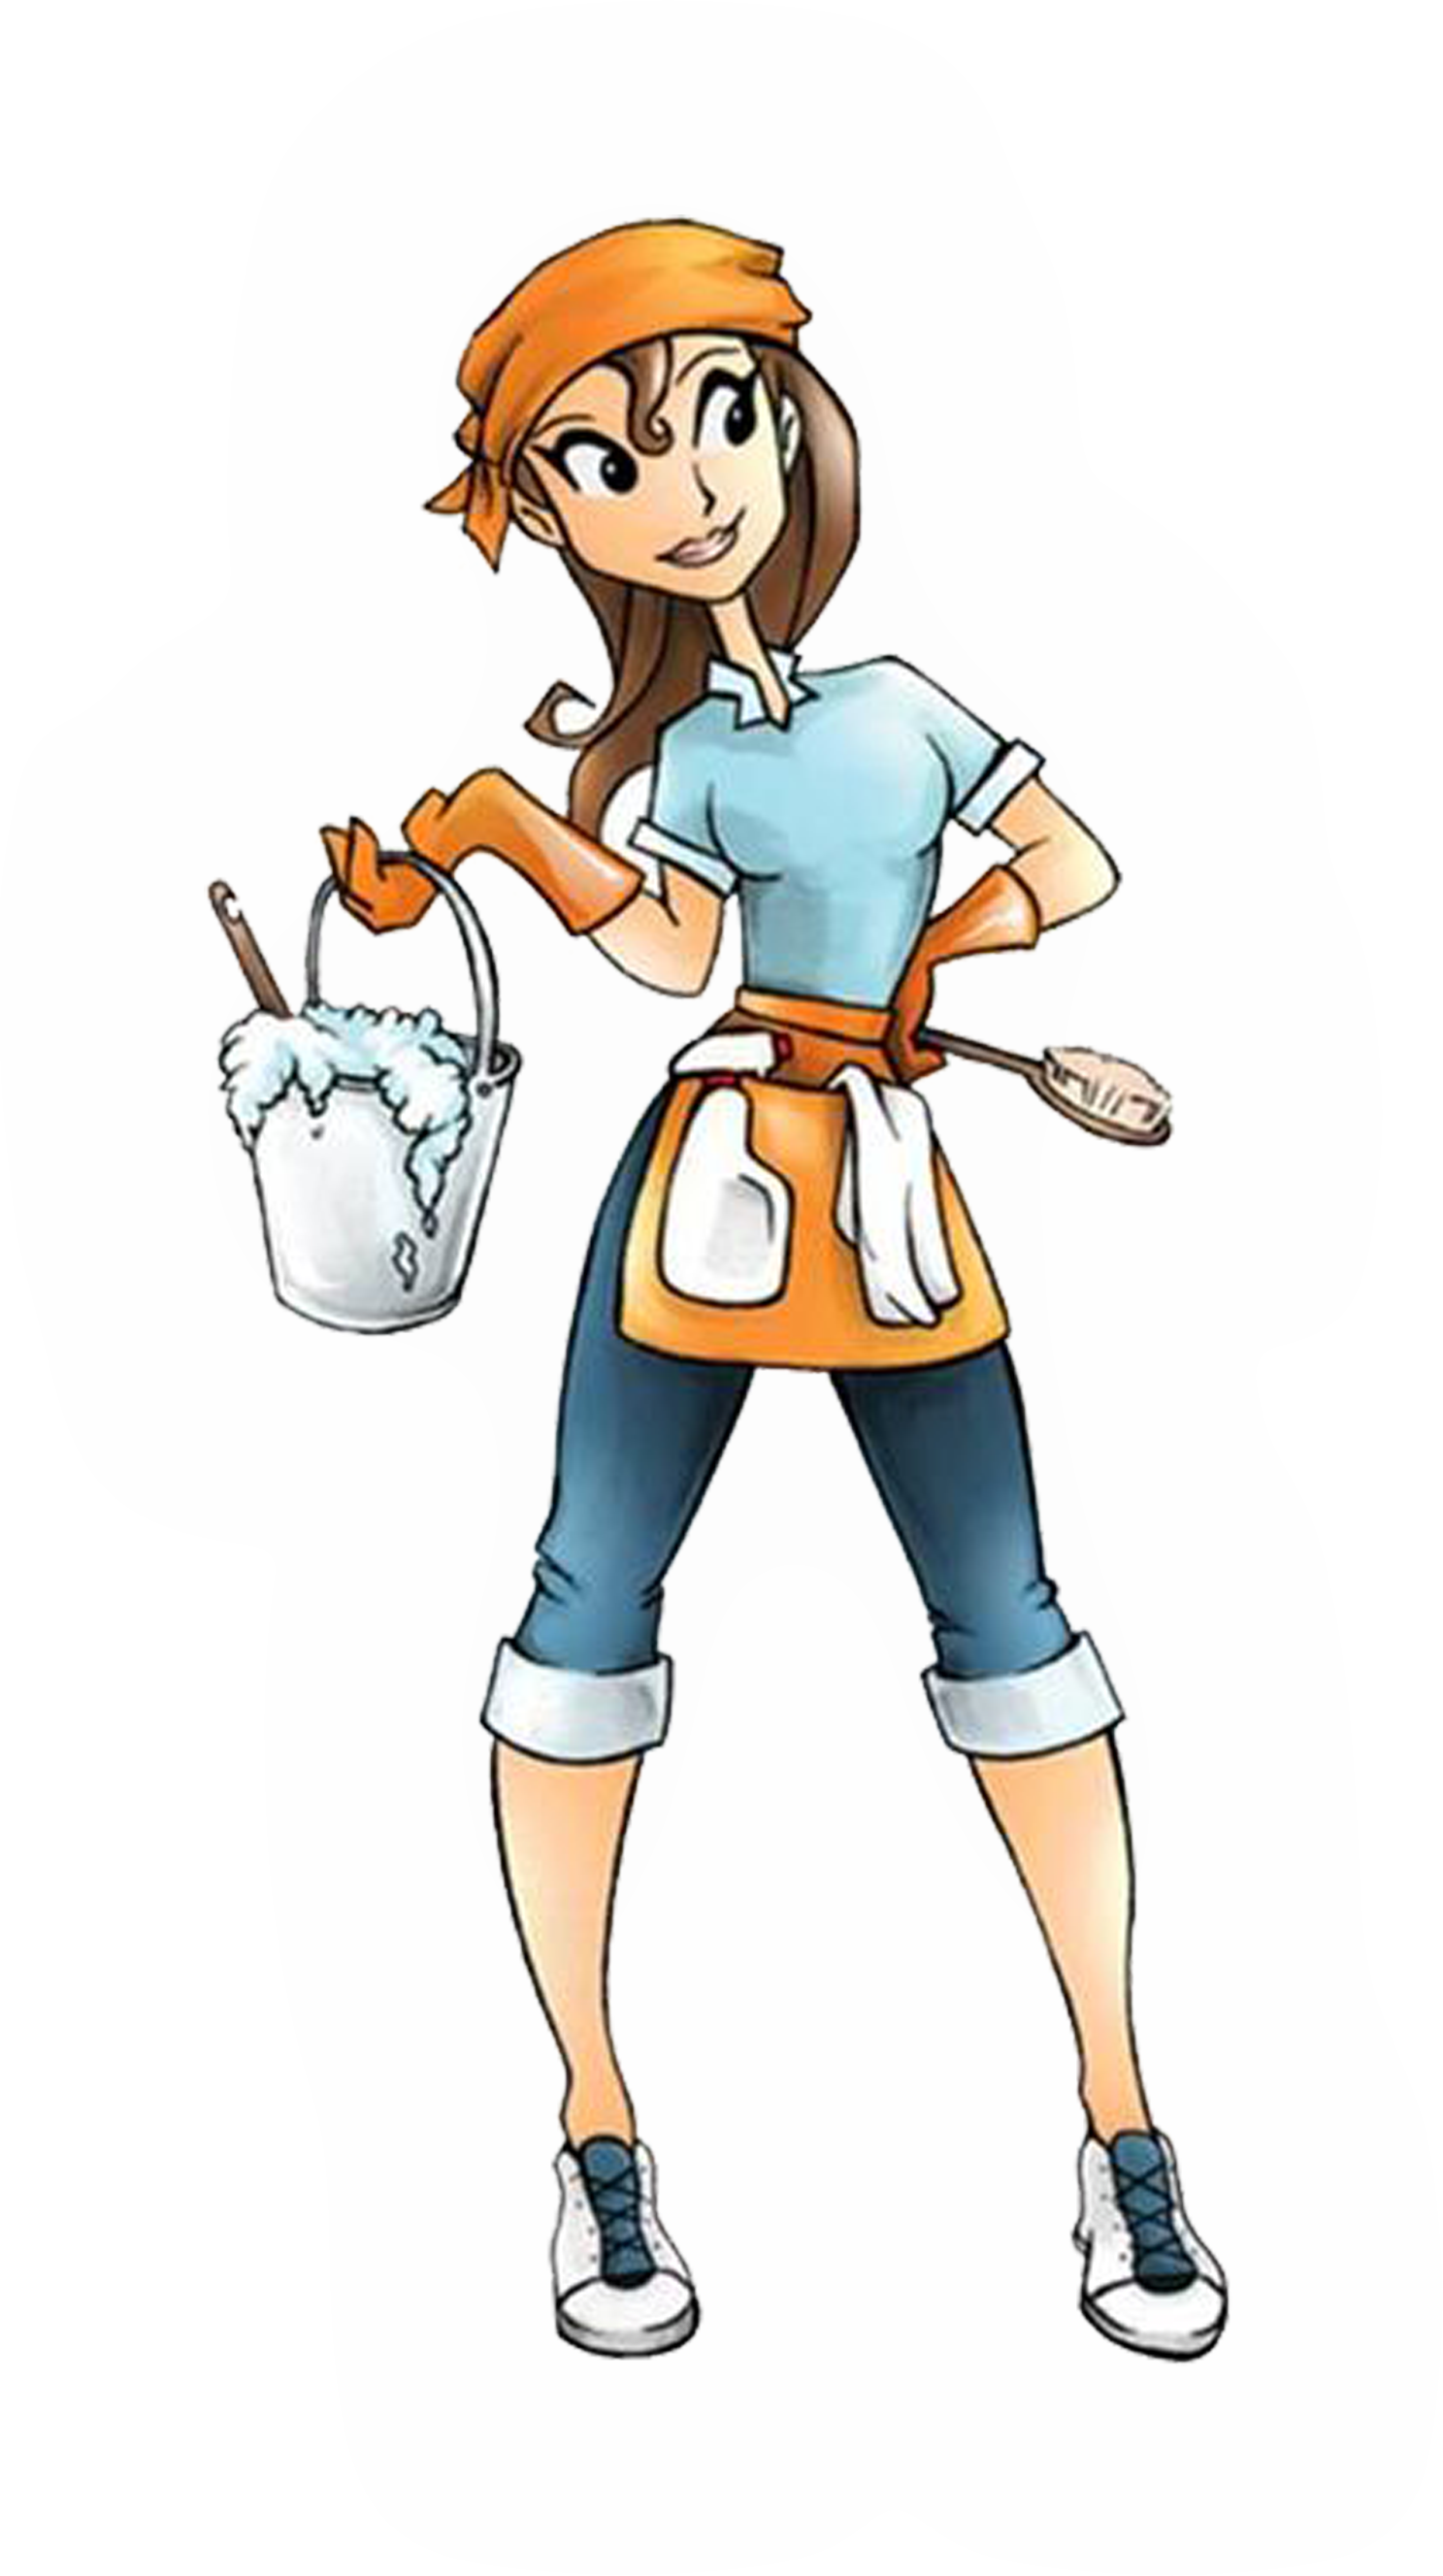 Cleaning Lady Cartoon Cliparts Co-Cleaning Lady Cartoon Cliparts Co-4